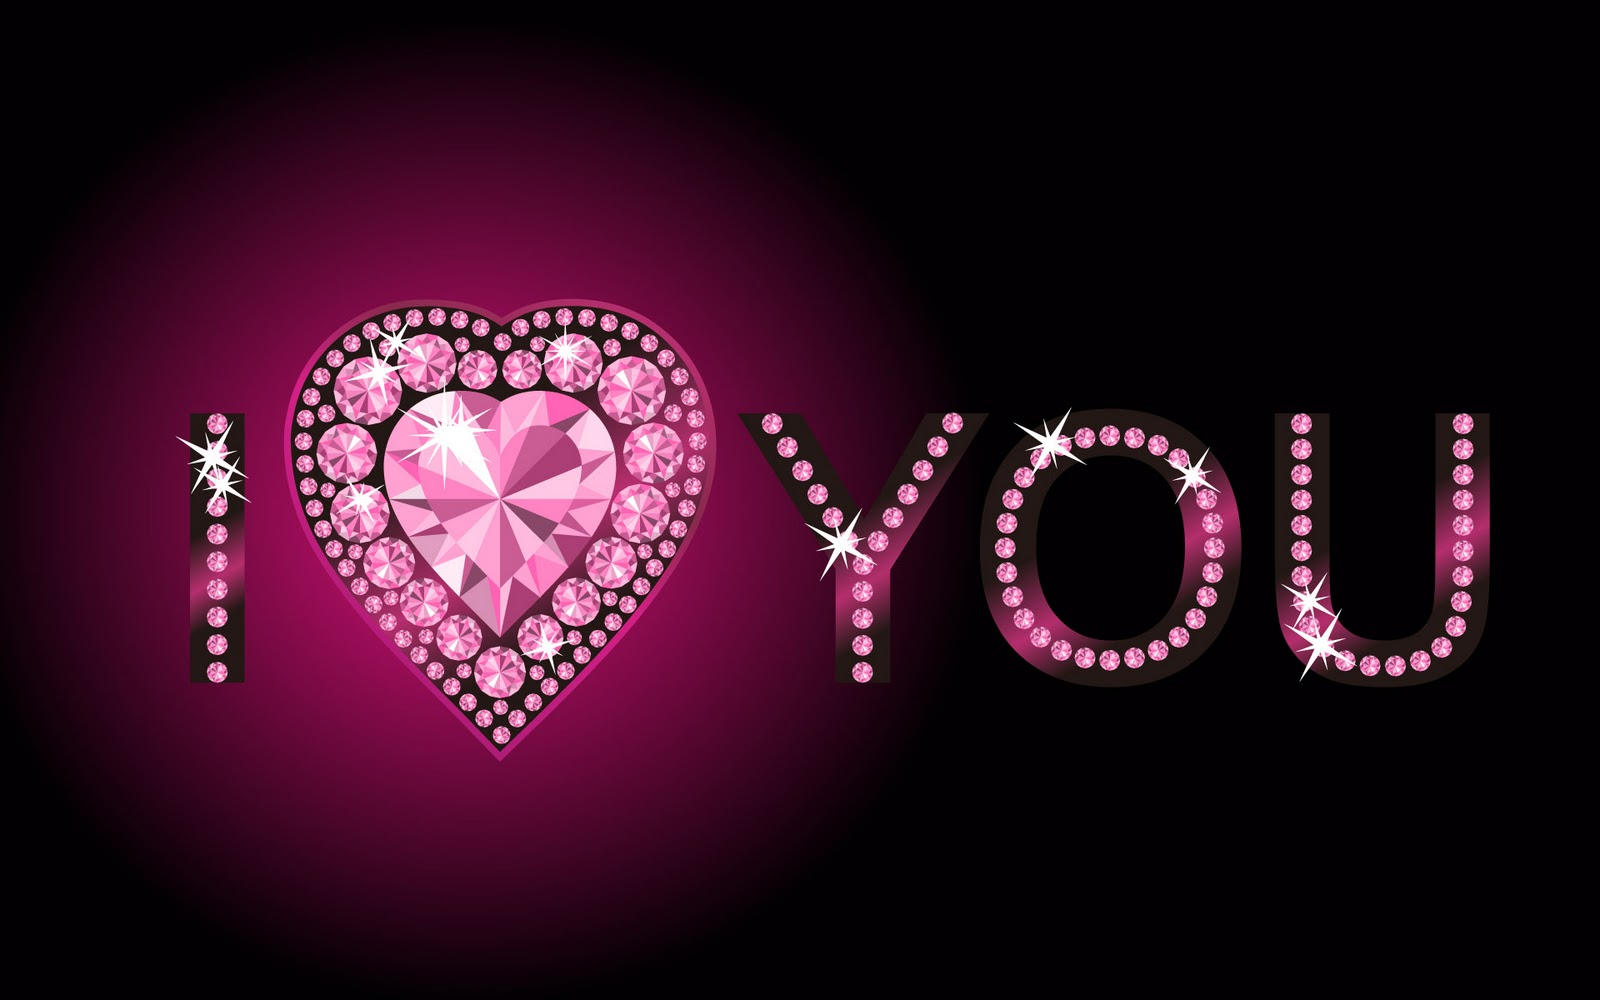 Download love wallpapers free download 2013 gallery - Love f wallpaper hd download ...